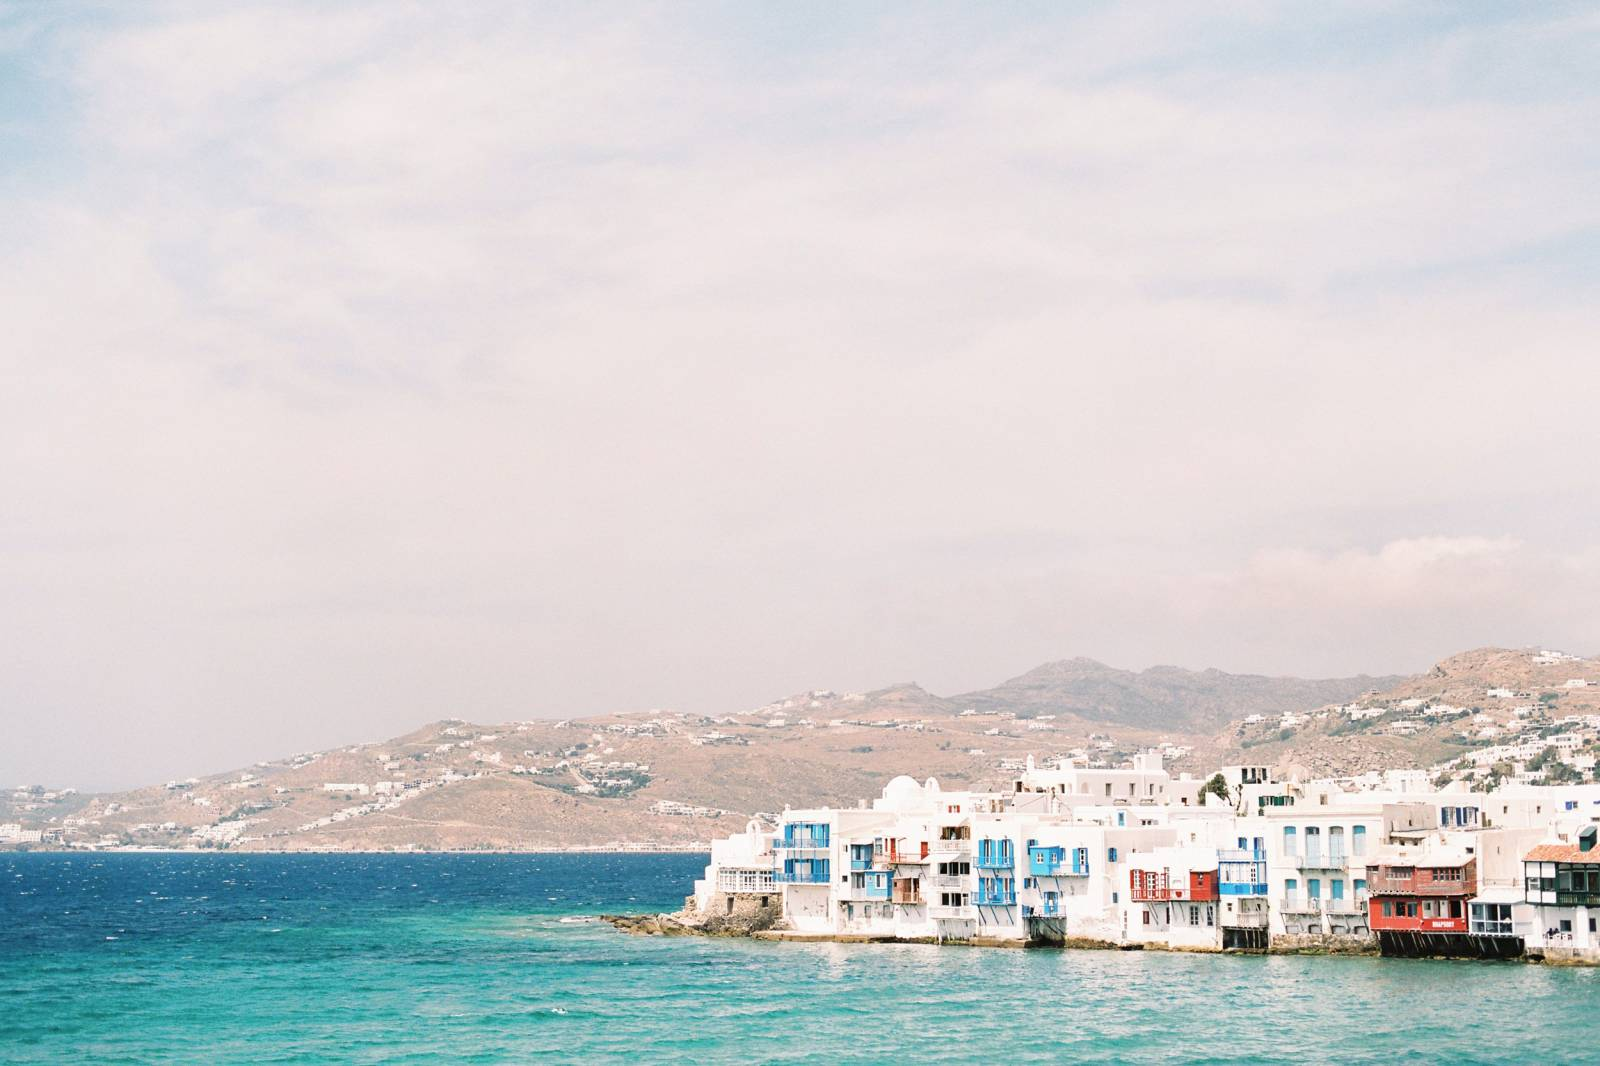 a panoramic view of Little Venice in Mykonos Greece